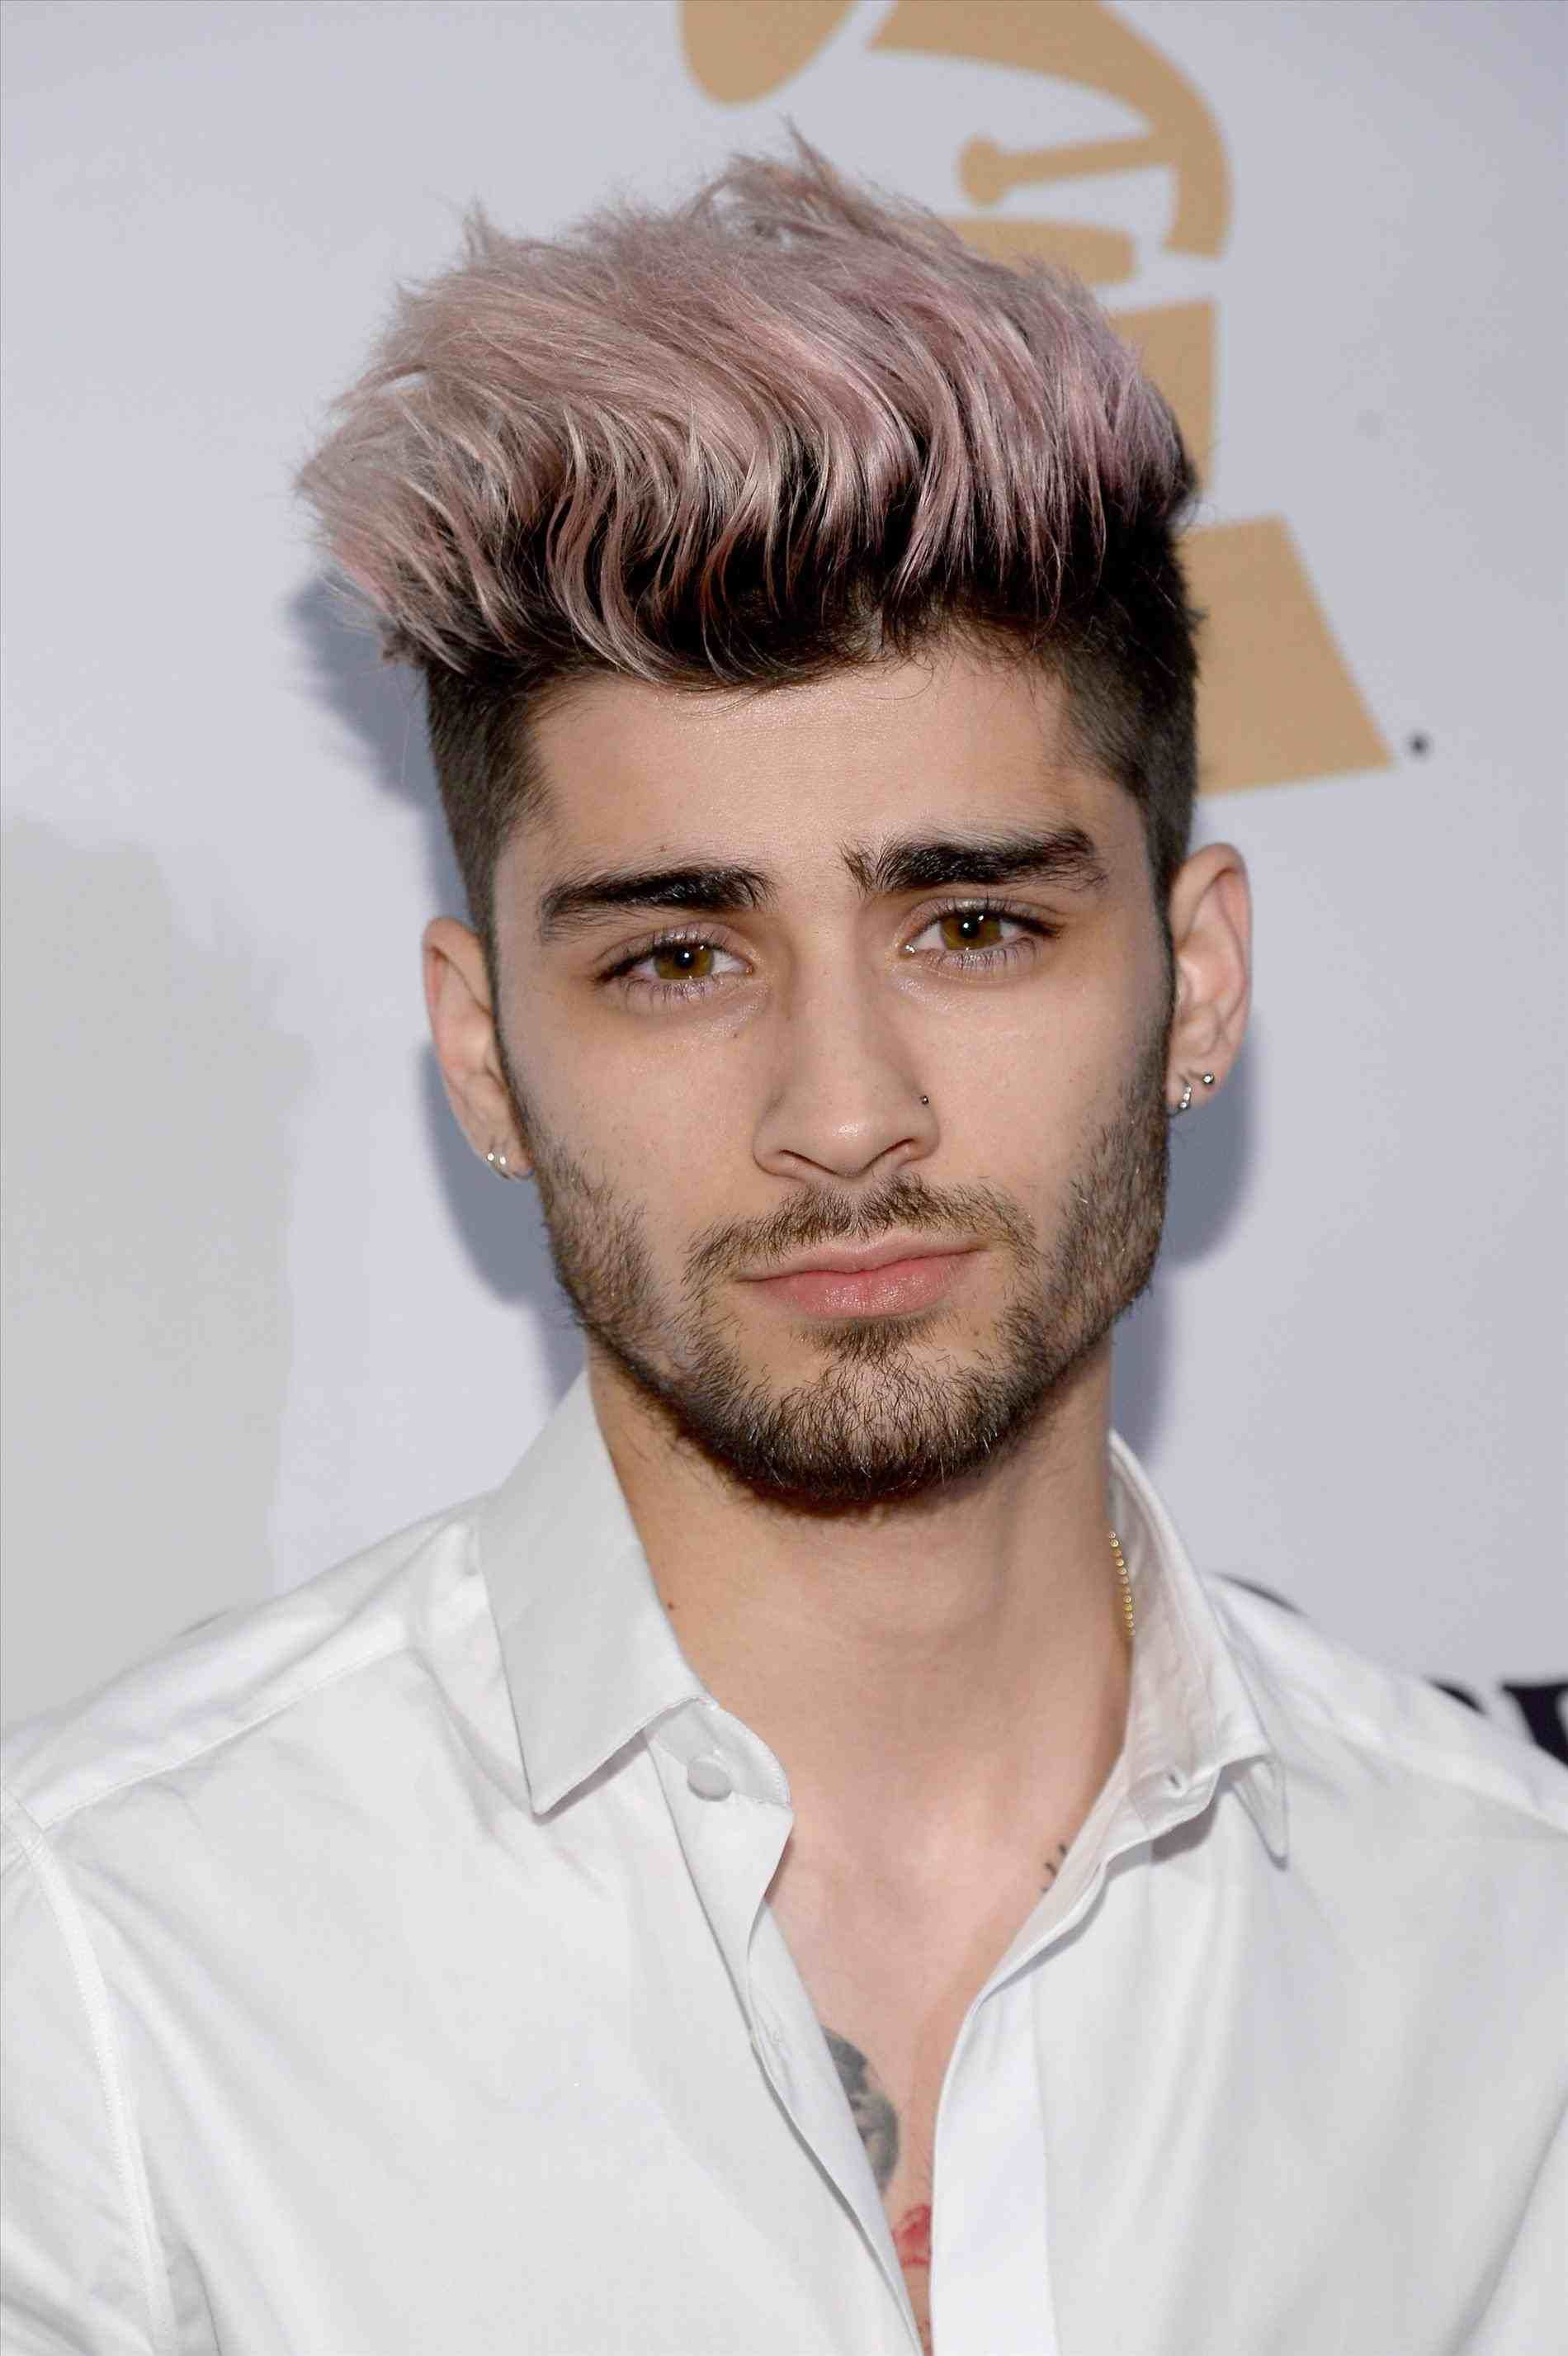 Balayagehair Club Nbspthis Website Is For Sale Nbspbalayagehair Resources And Information Zayn Malik Hairstyle Zayn Malik Style Hairstyles Zayn